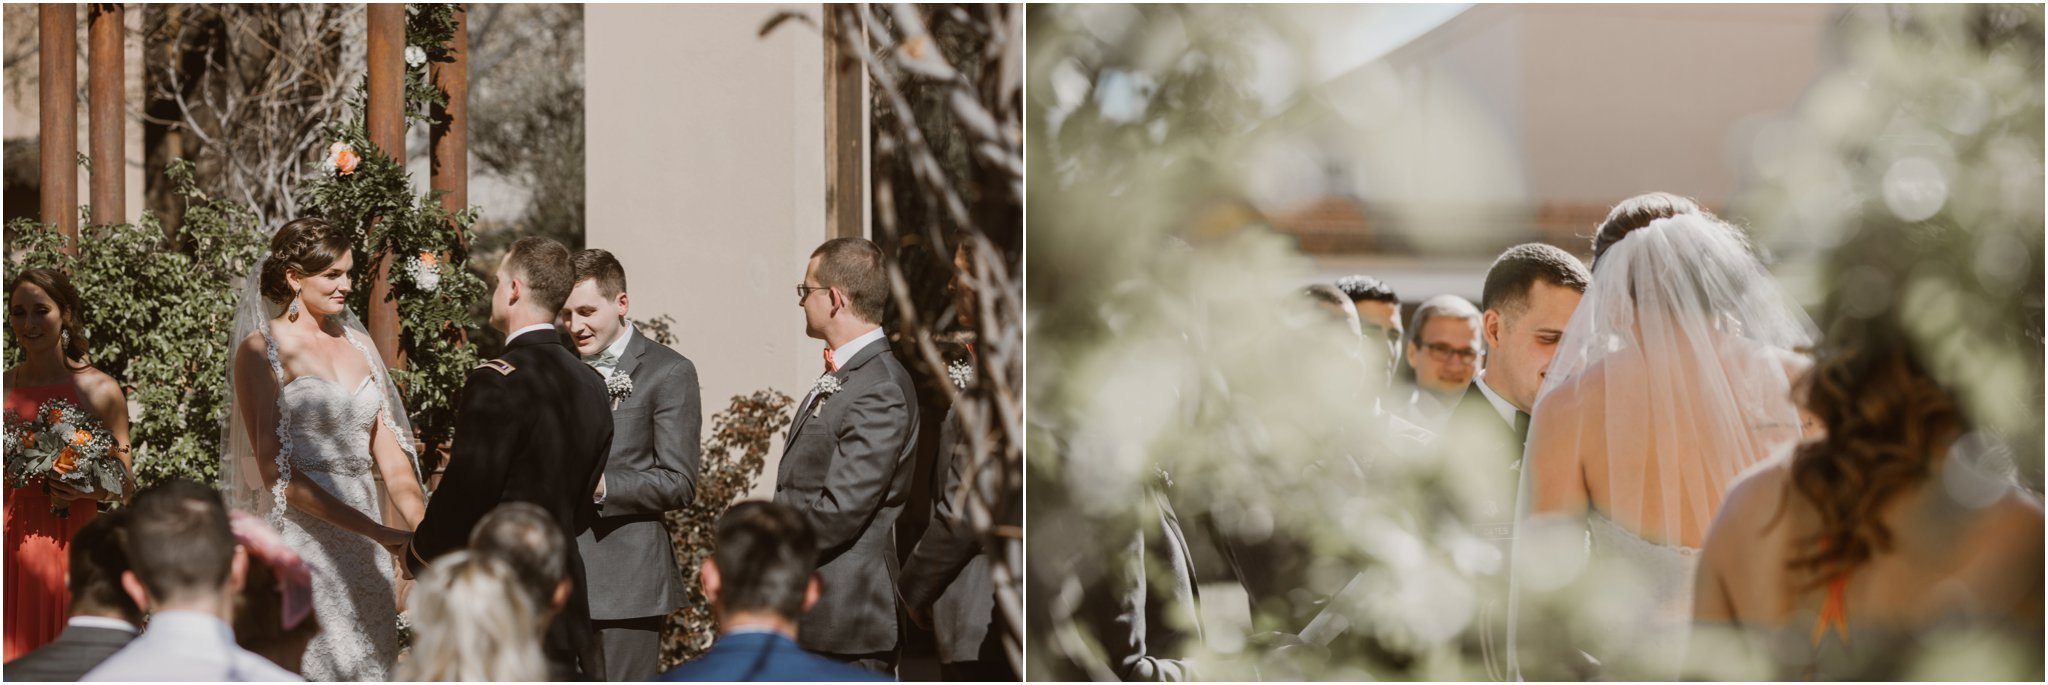 24Blue Rose Photography_ Albuquerque Wedding Photographer_ Santa Fe Wedding Photographers